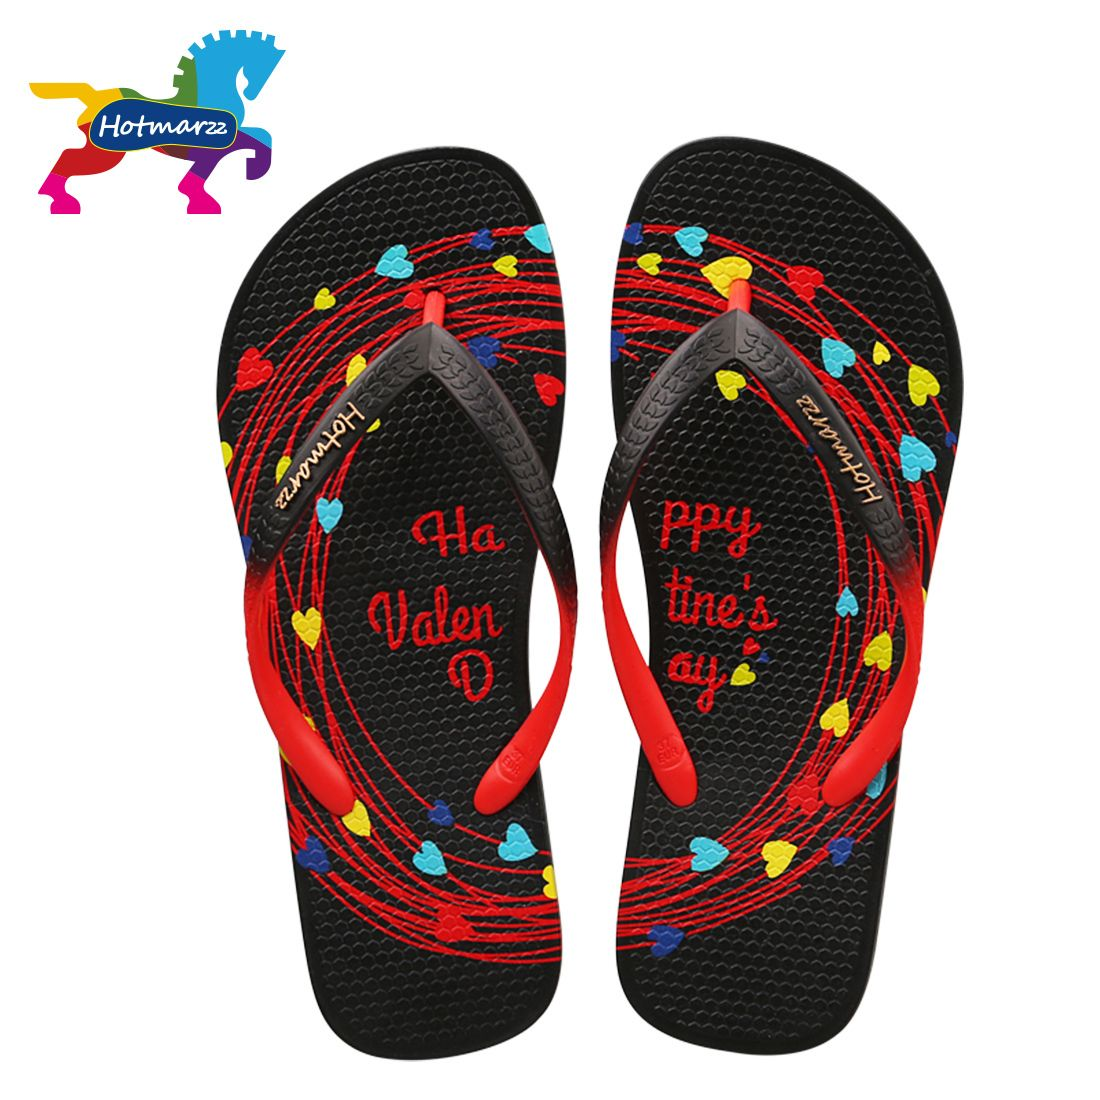 Unisex Non-slip Flip Flops Orange Poker Cool Beach Slippers Sandal